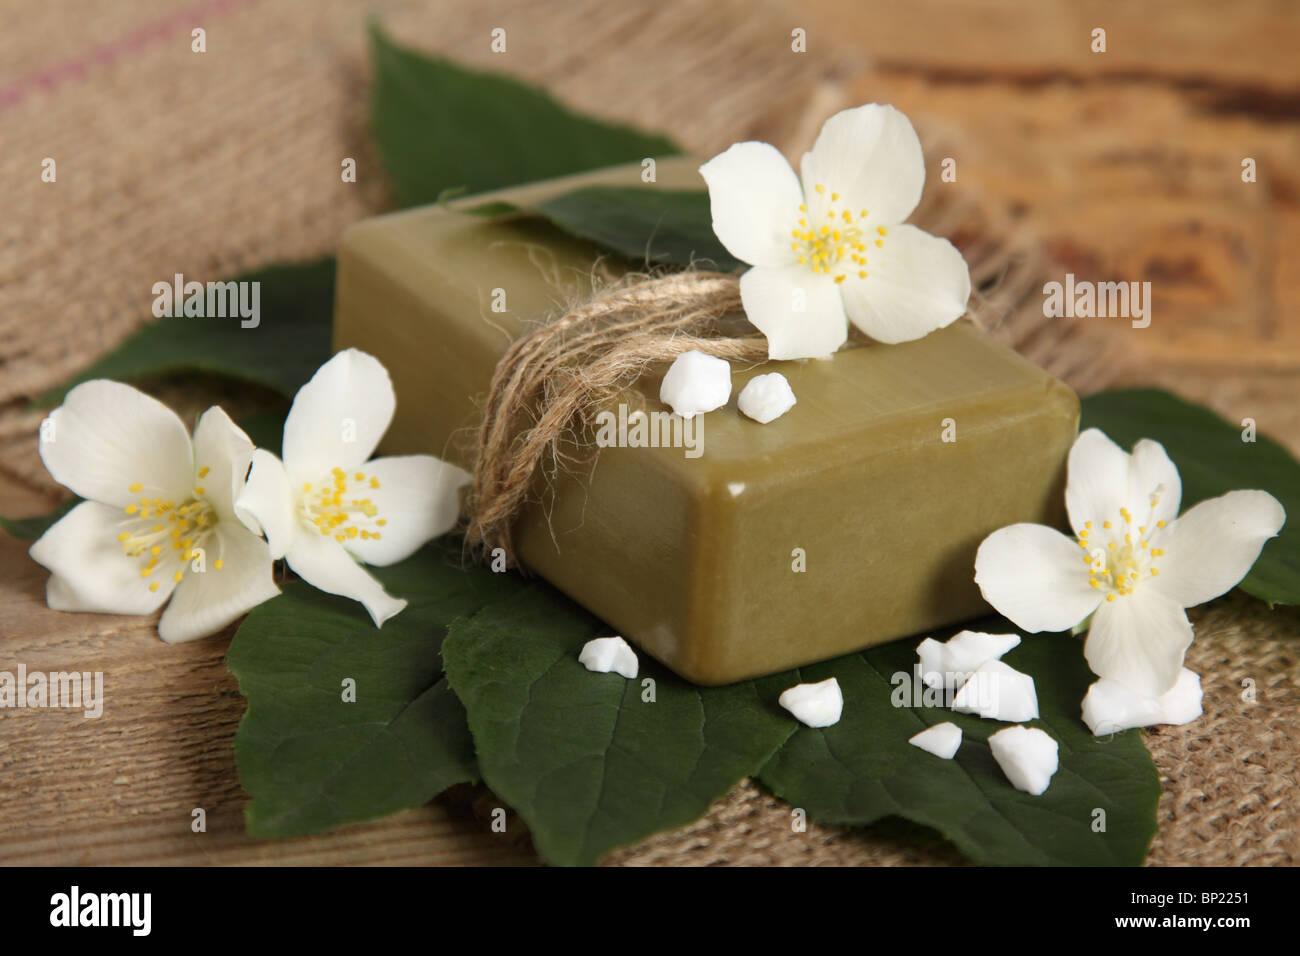 Bar of natural handmade soap on leaves. Spa - Stock Image